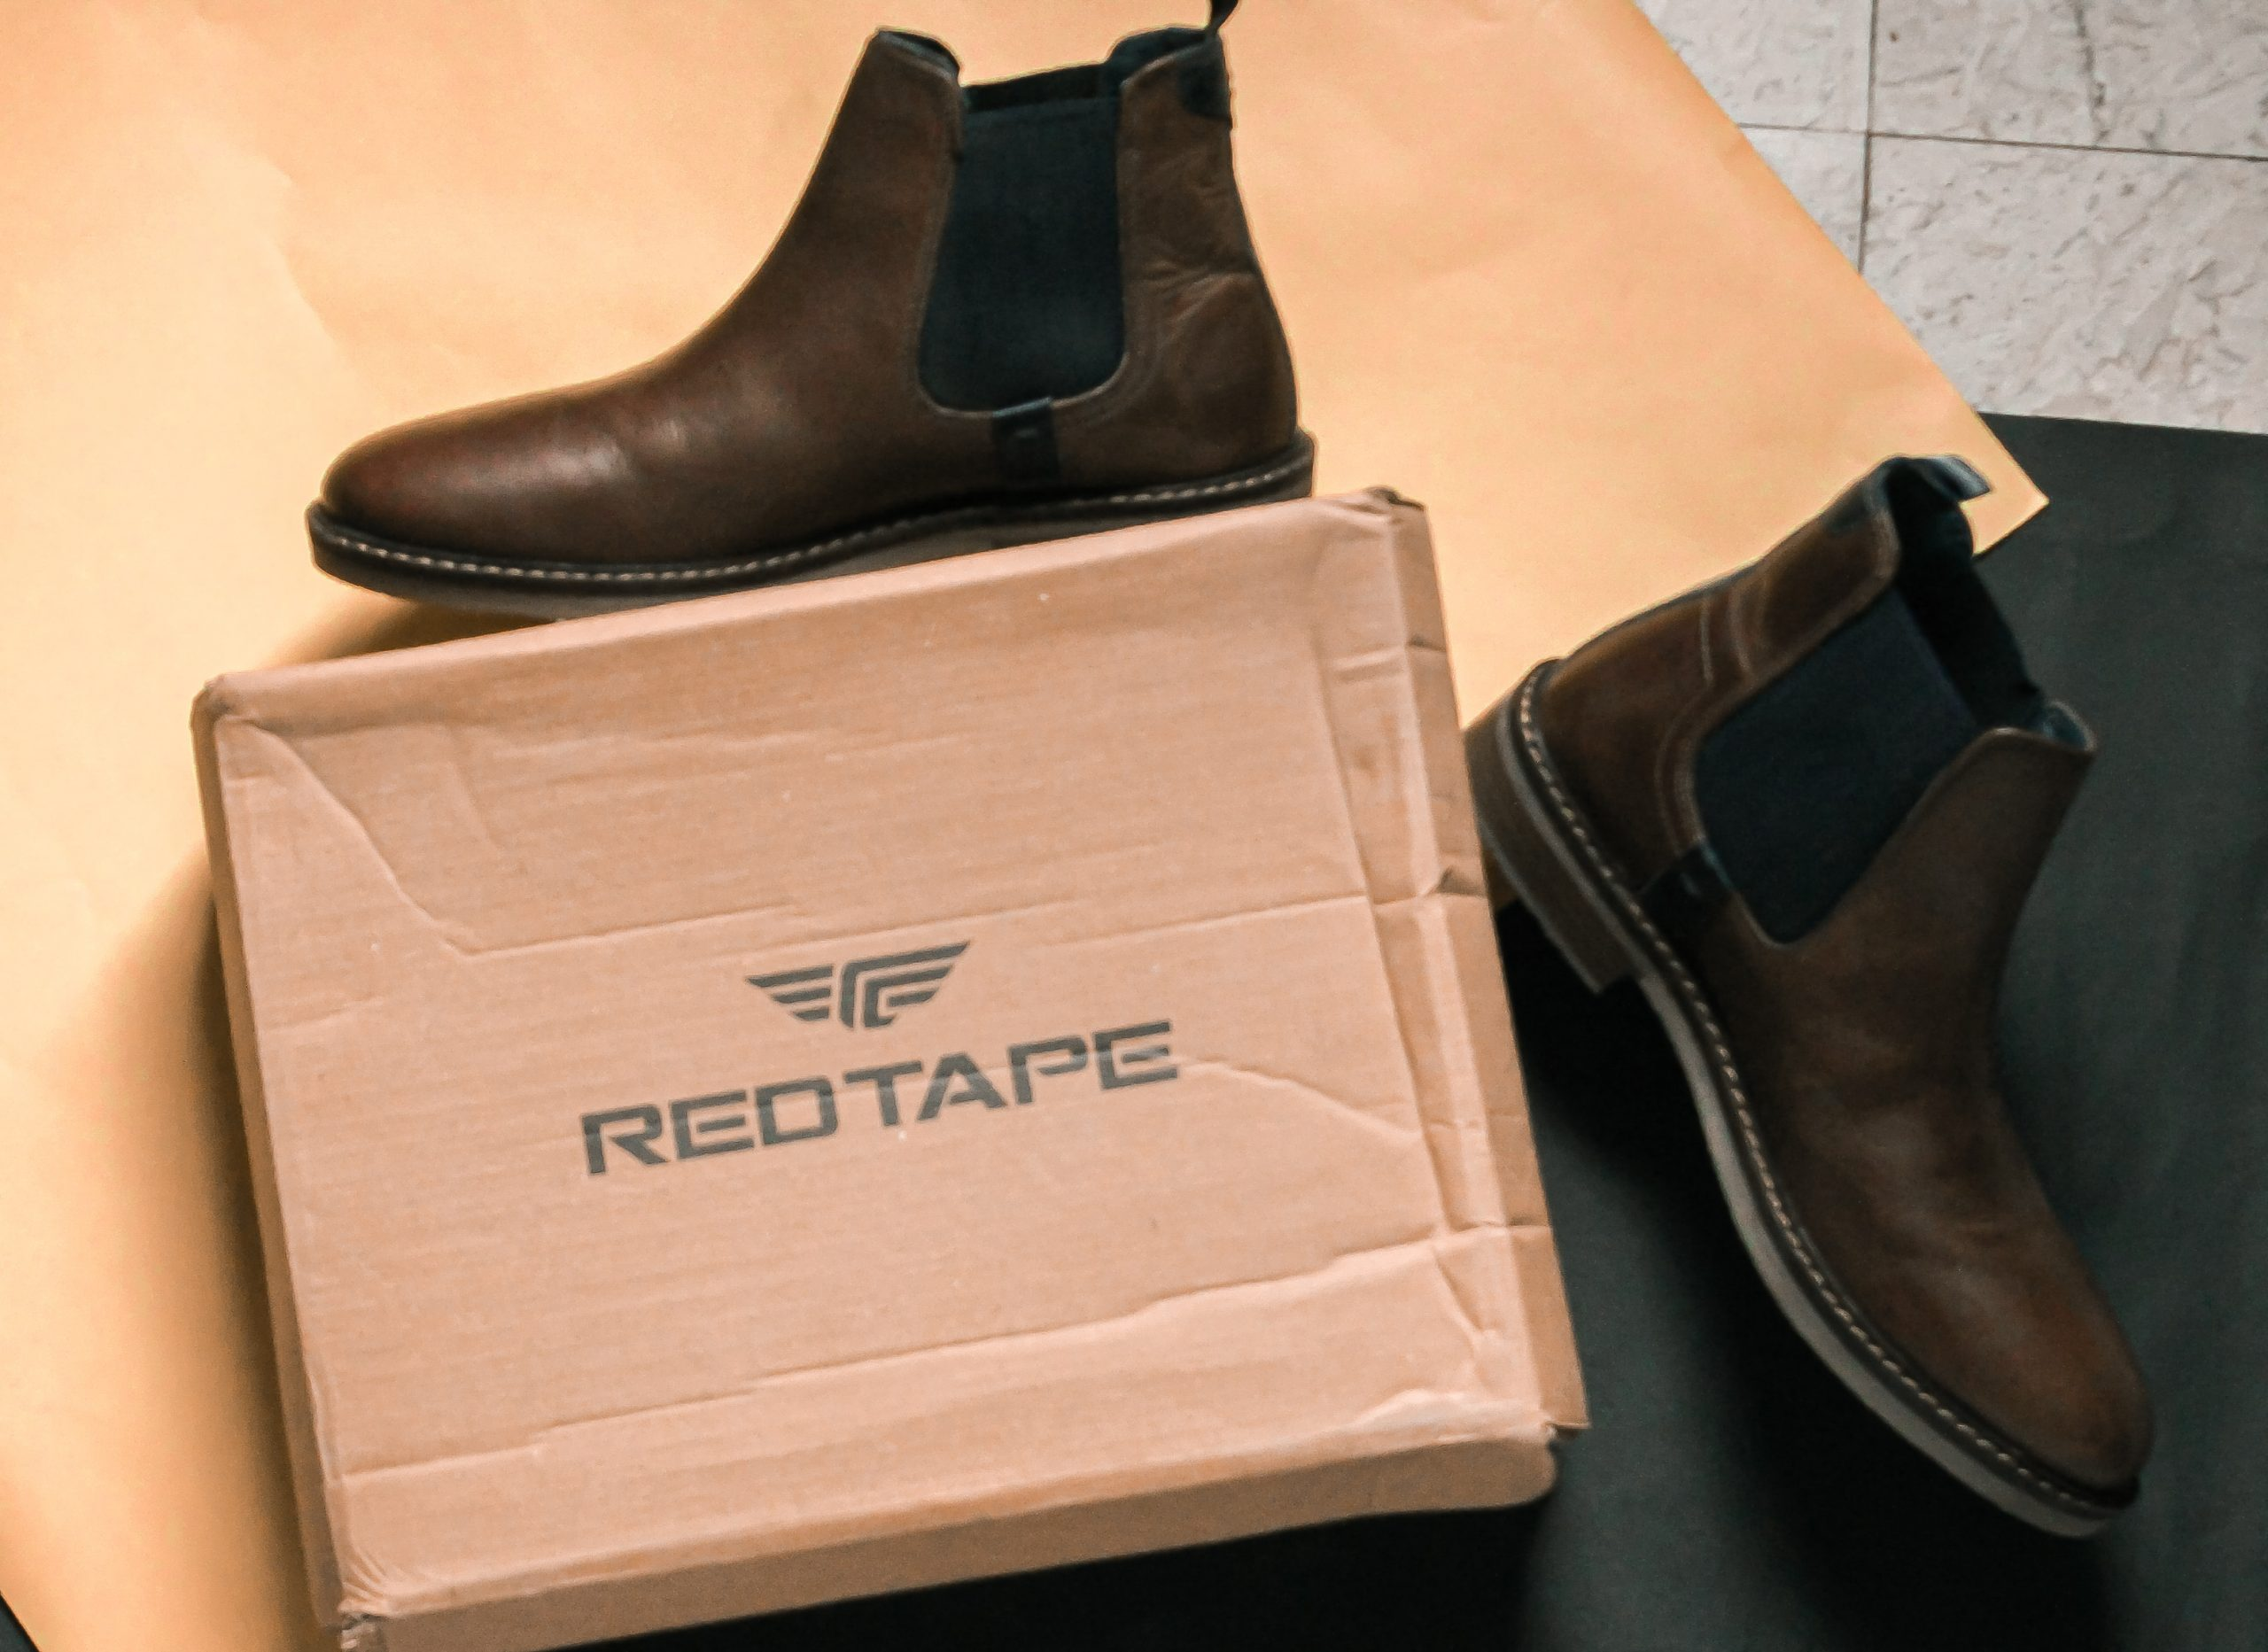 Red tape Boot